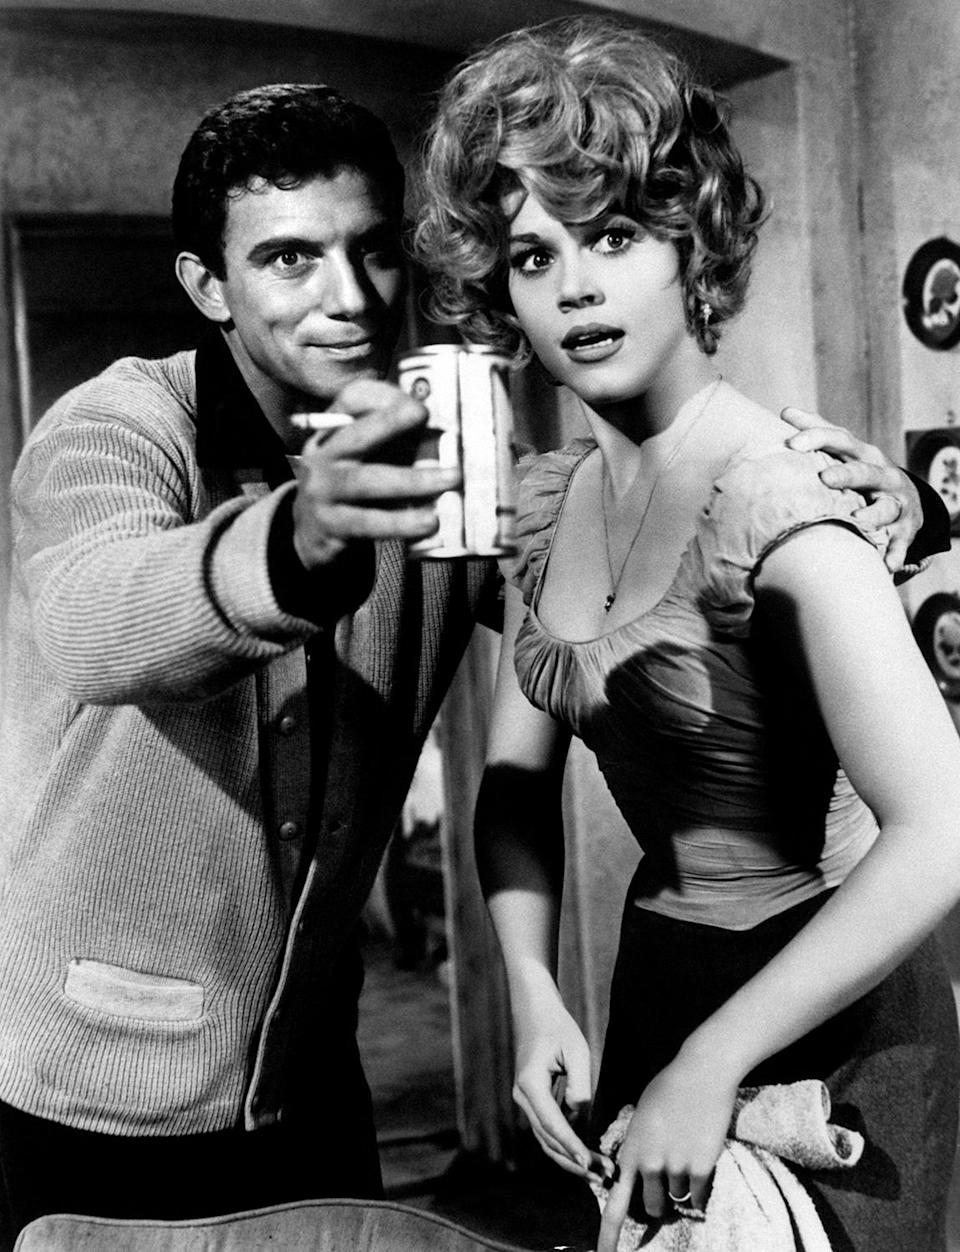 <p>She tackled the role of Isabel Haverstick, alongside Anthony Franciosa, in the film <em>Period of Adjustment</em> in 1962.</p>